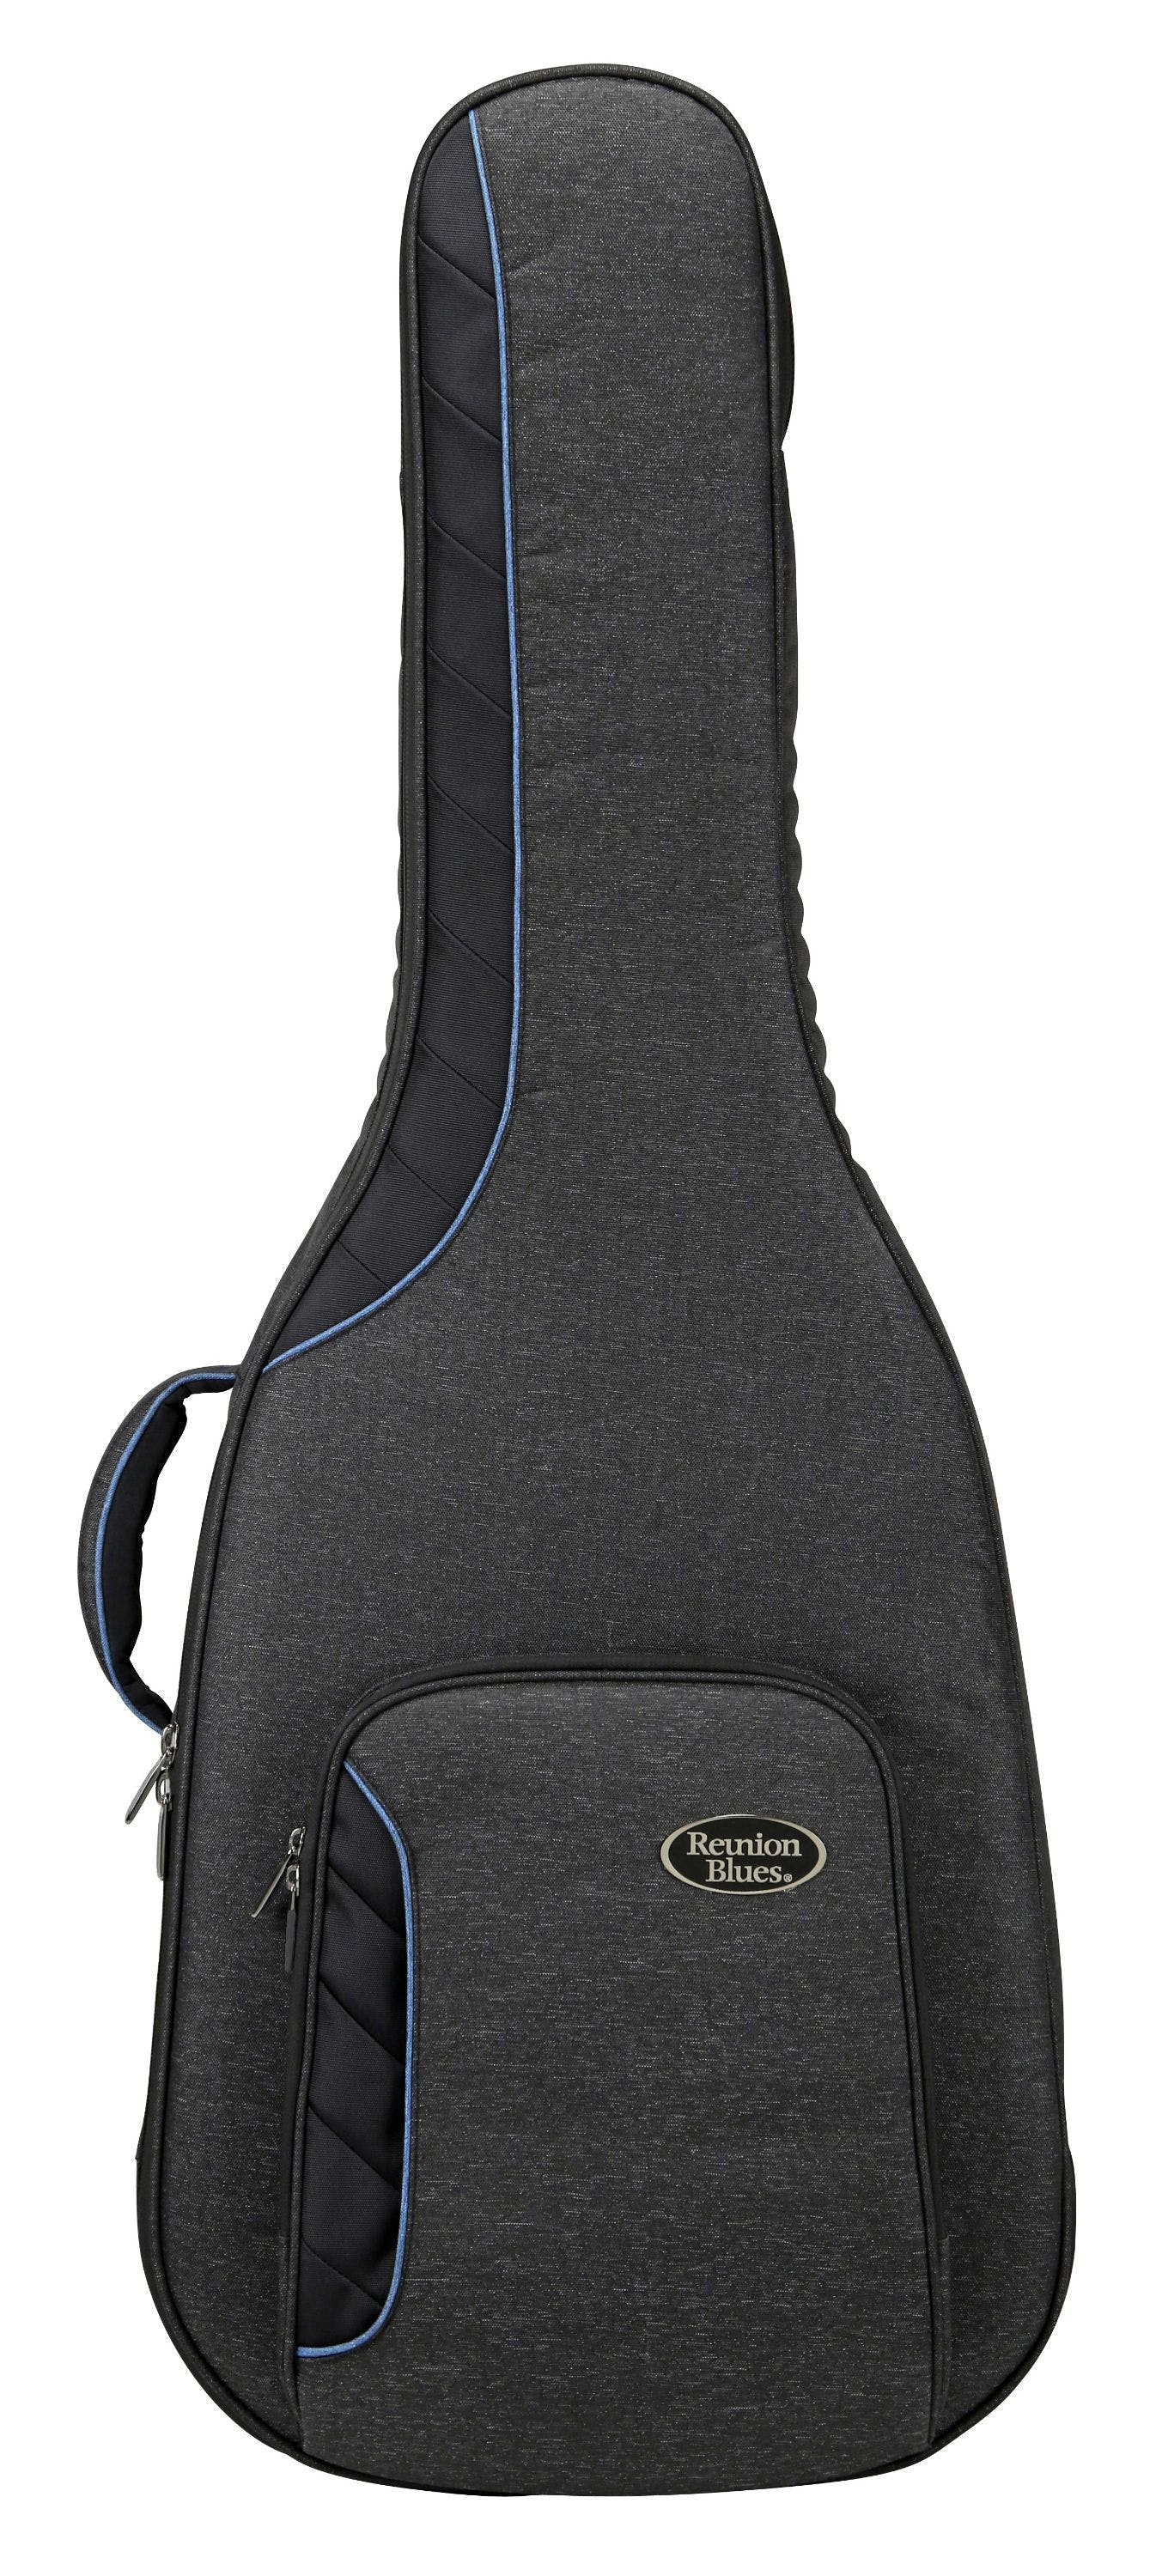 ACOUSTIC WESTERN GUITAR GIG BAG HEAVY DUTY PROTECTION WELL PADDED BY POD BARGAIN